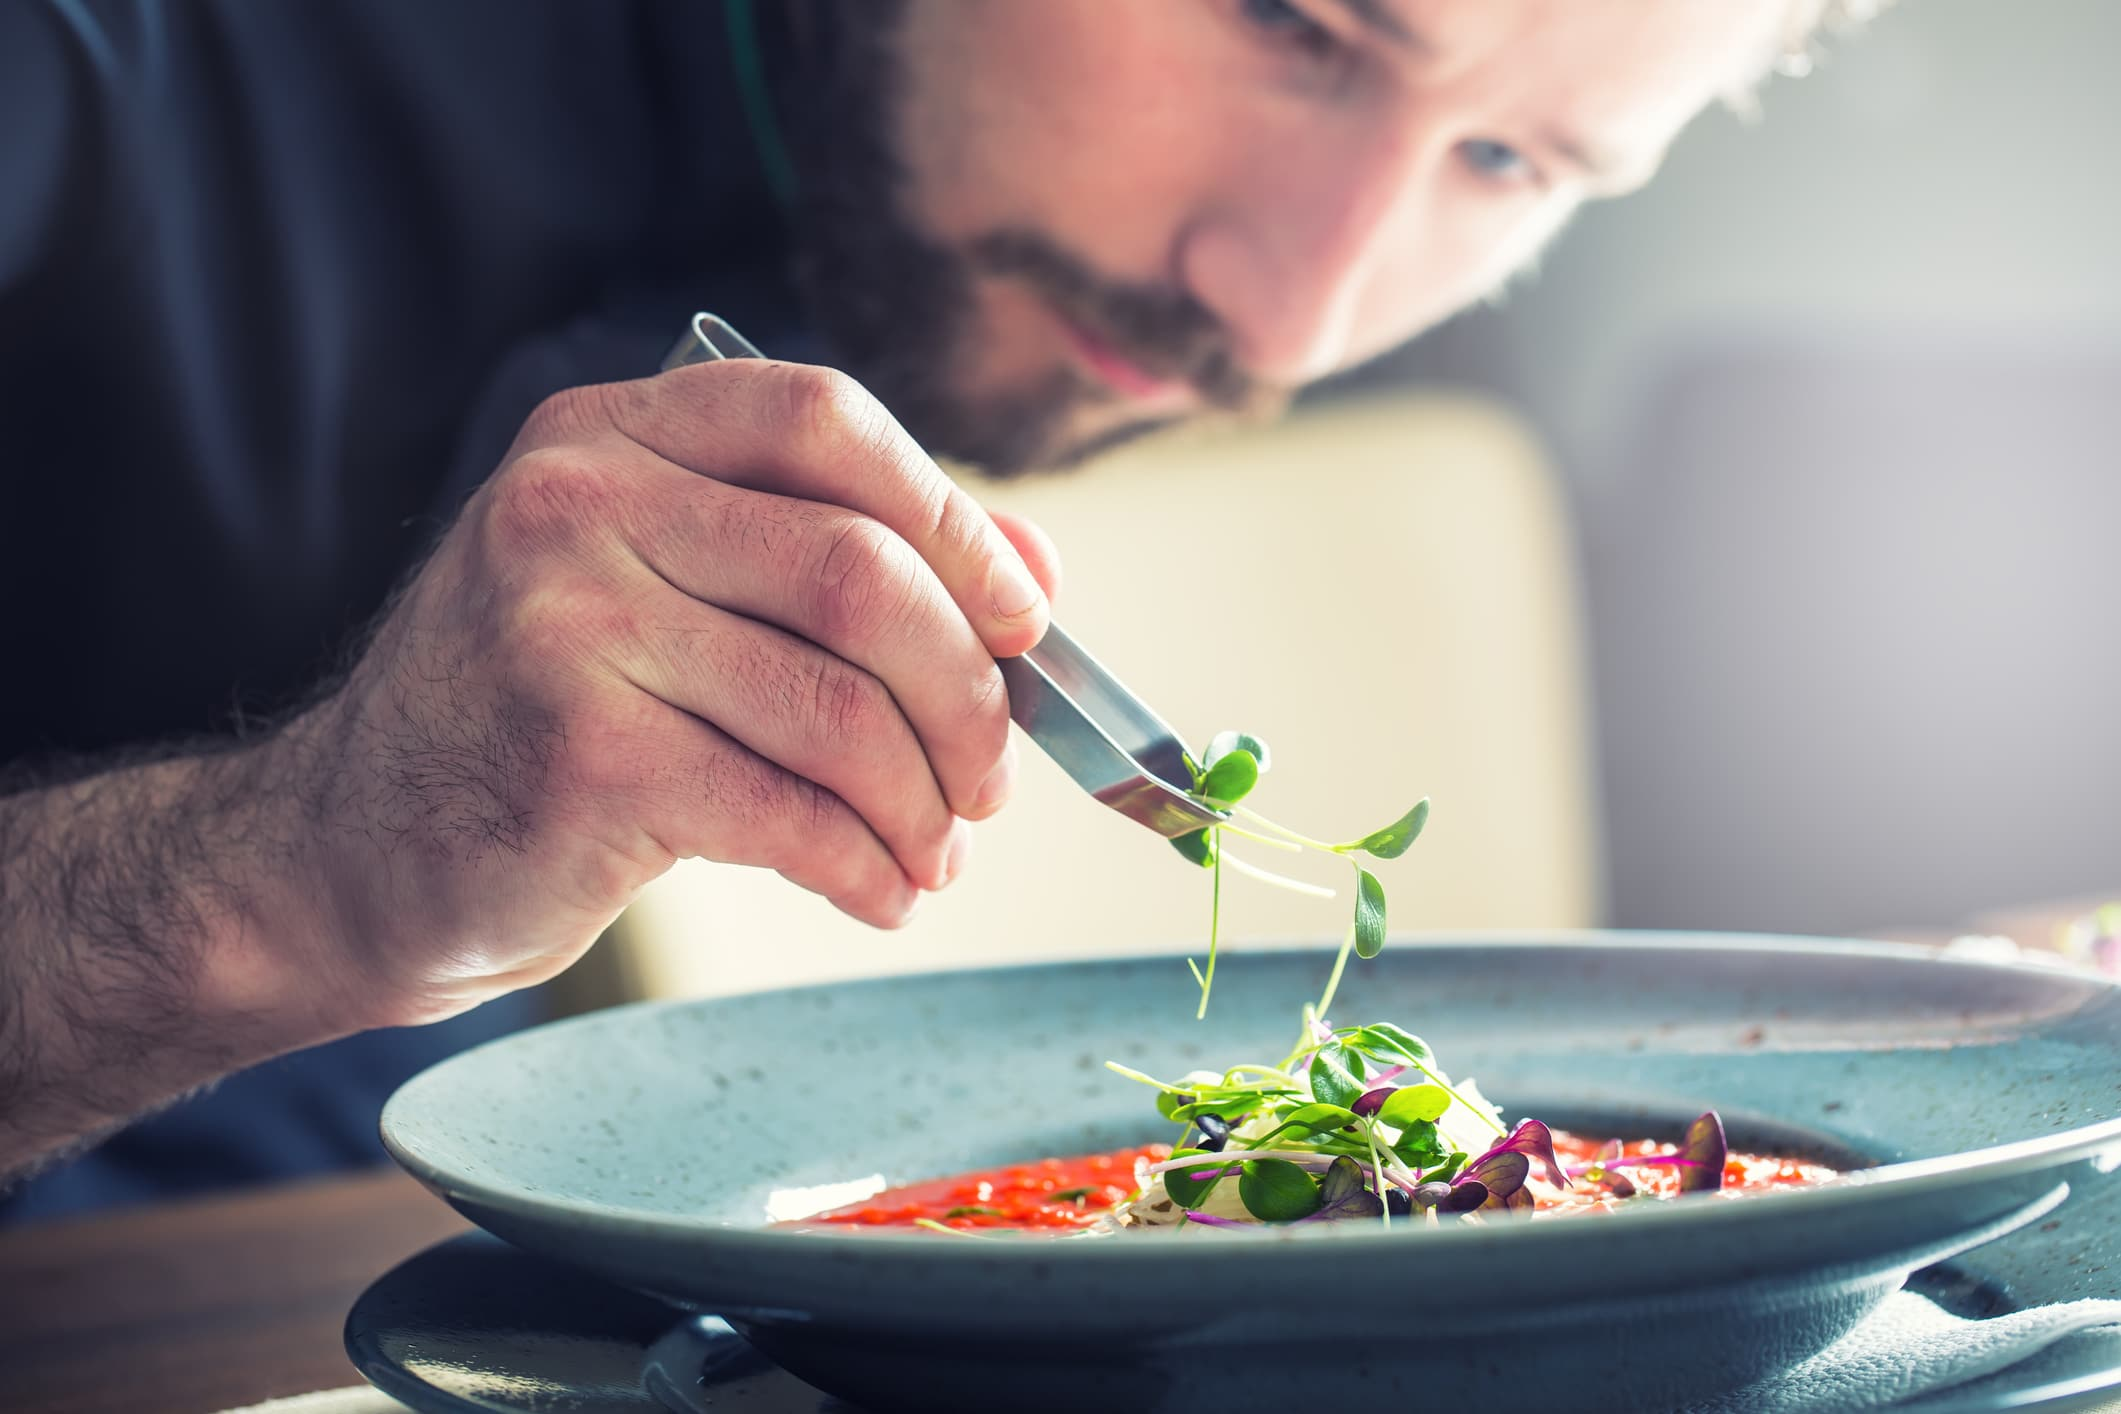 chef-applies-finishing-touches-to-dish